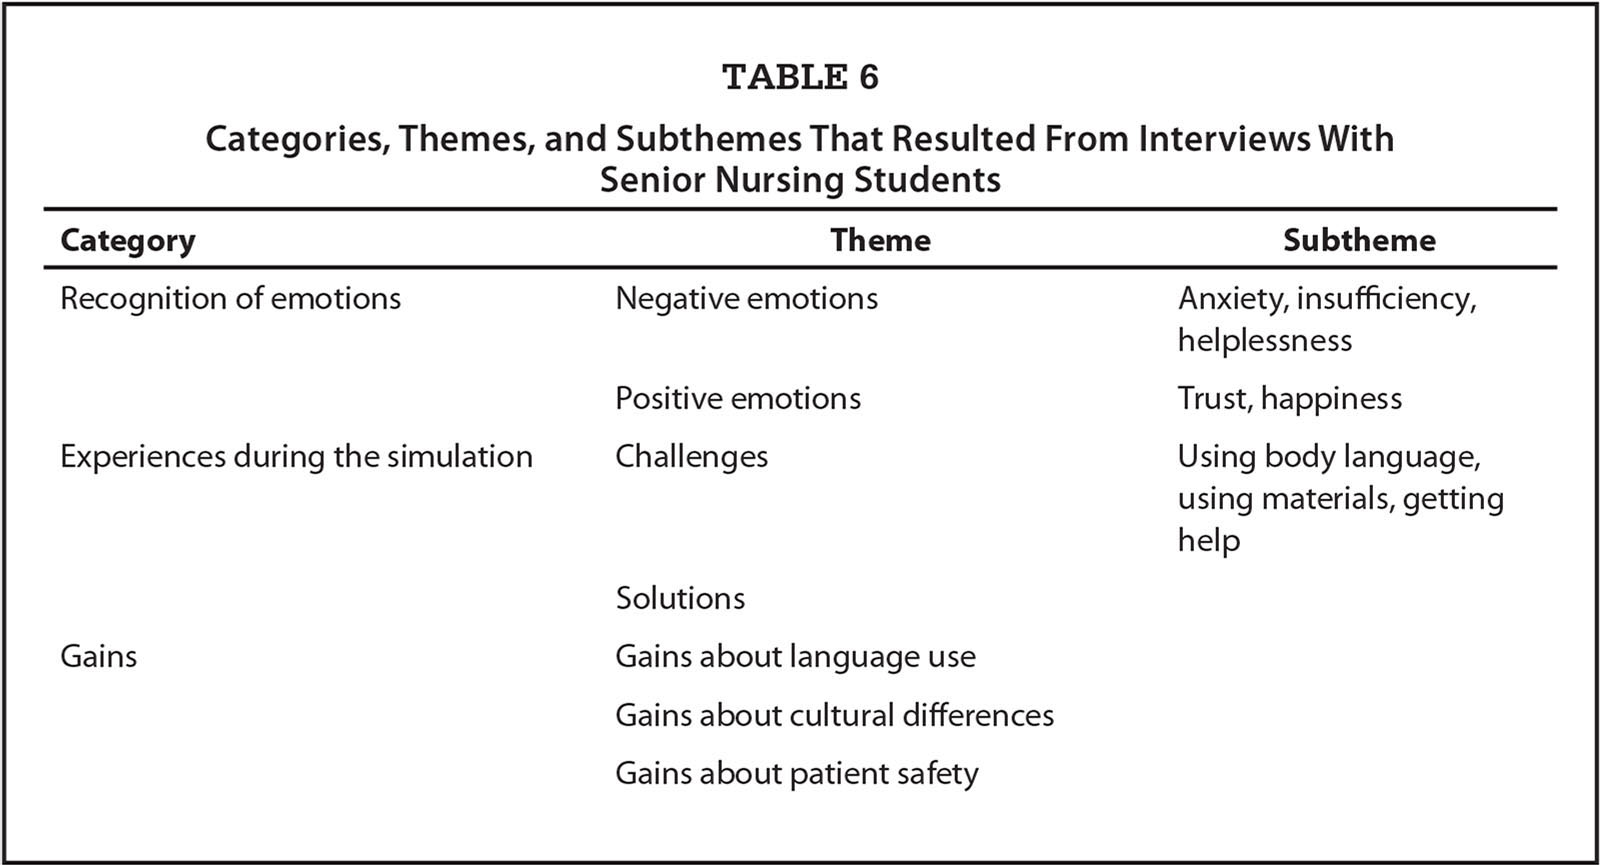 Categories, Themes, and Subthemes That Resulted From Interviews With Senior Nursing Students